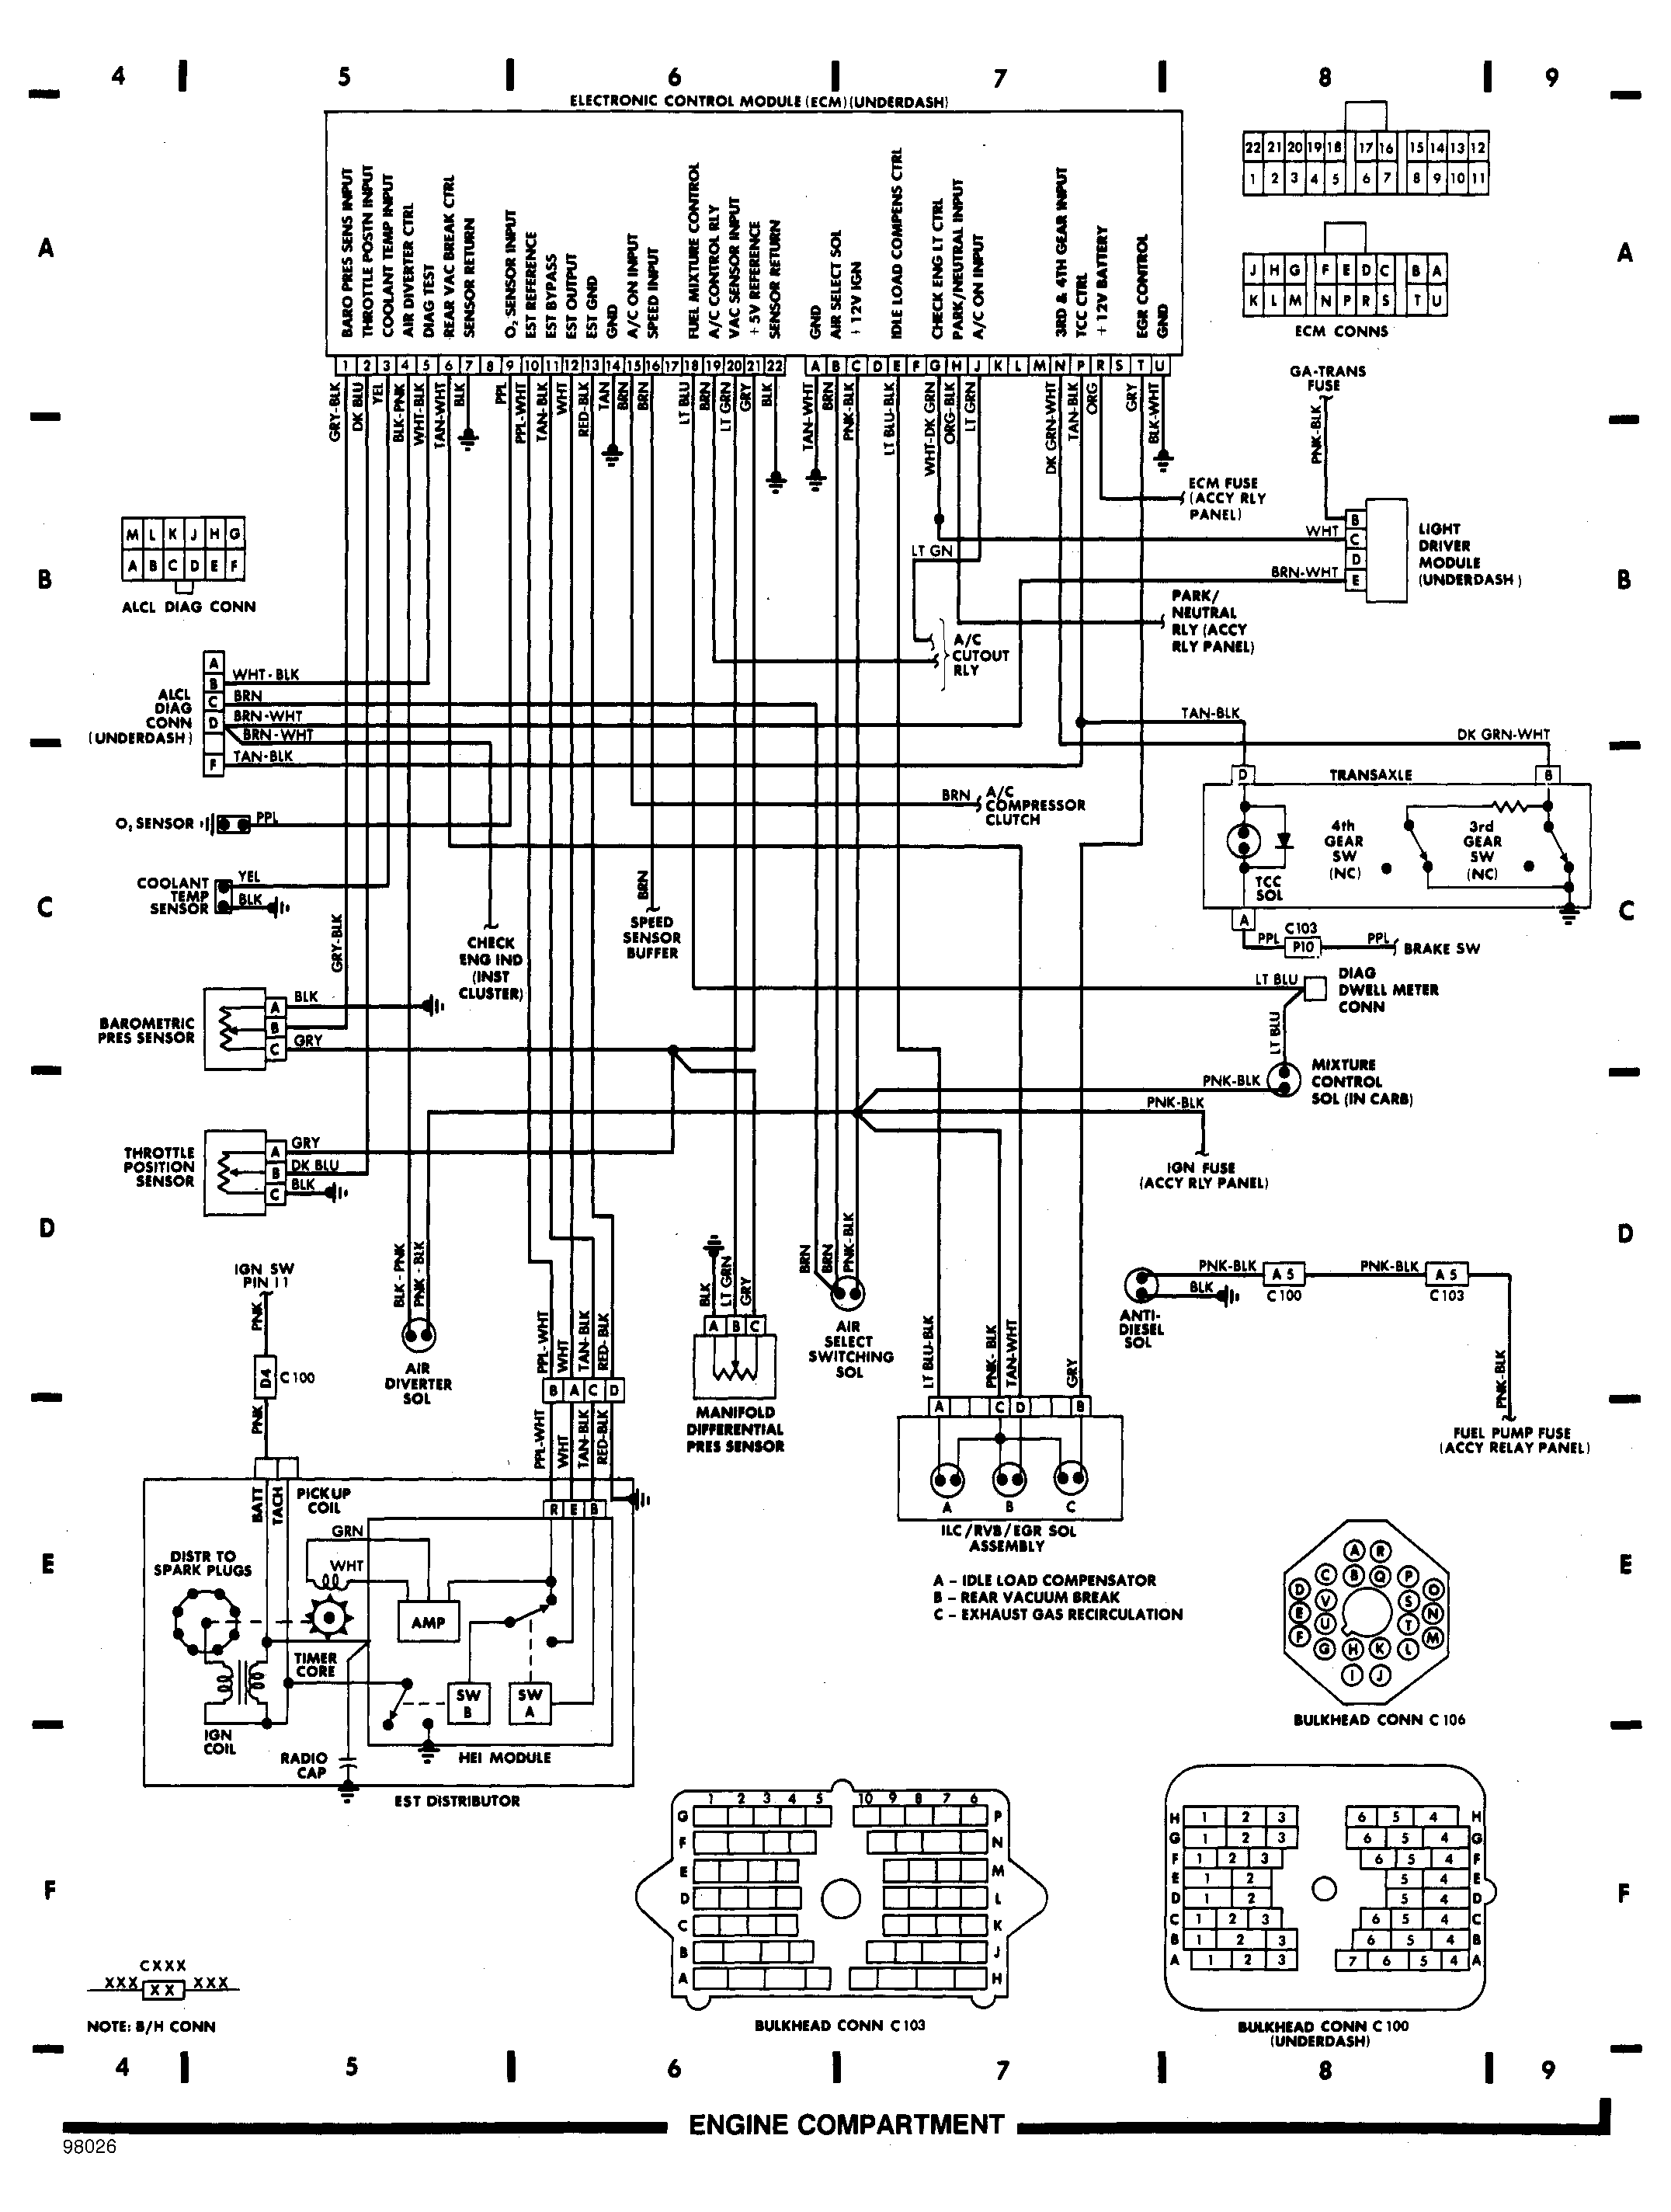 wiring diagrams 2012 Cadillac Wiring Schematics engine compartment 2